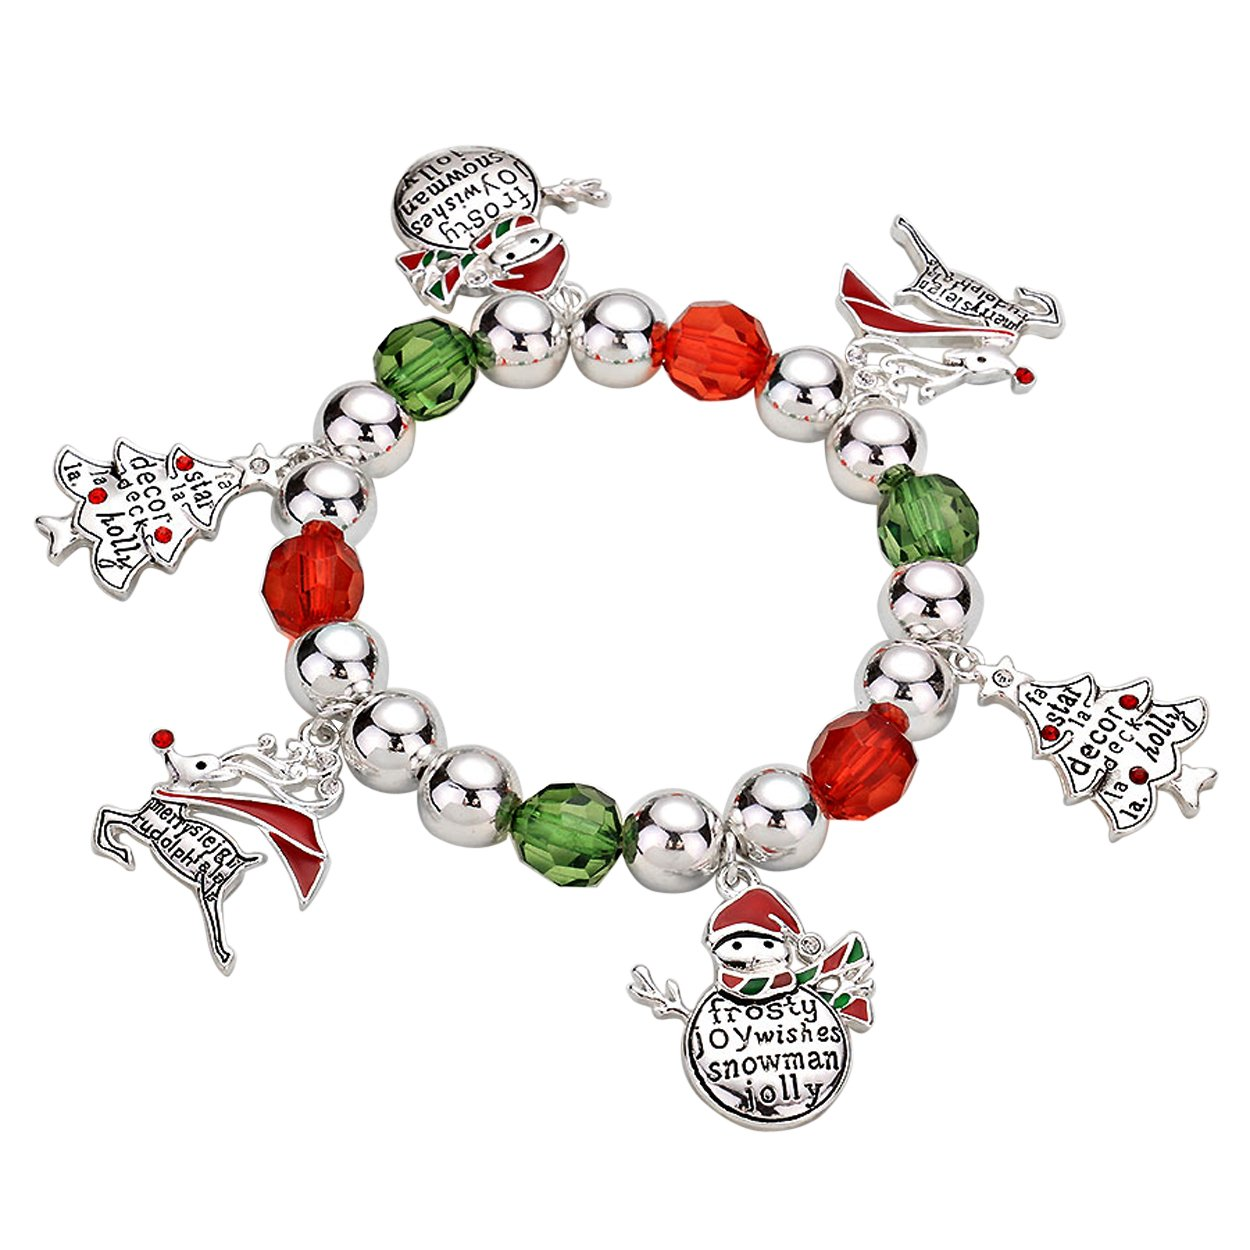 Inspirational Winter Holiday Christmas Bangle Bracelet Silver Tone with Green and Red Accents Rosemarie Collections SW-4800-2XXX